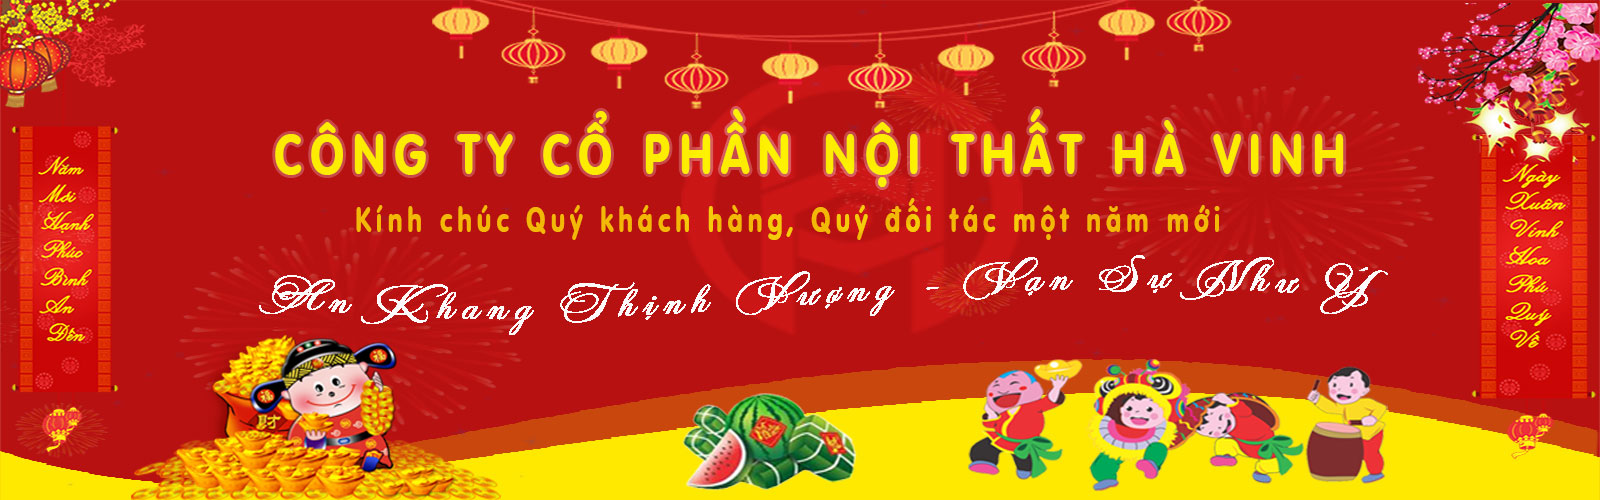 noi that thanh pho vinh